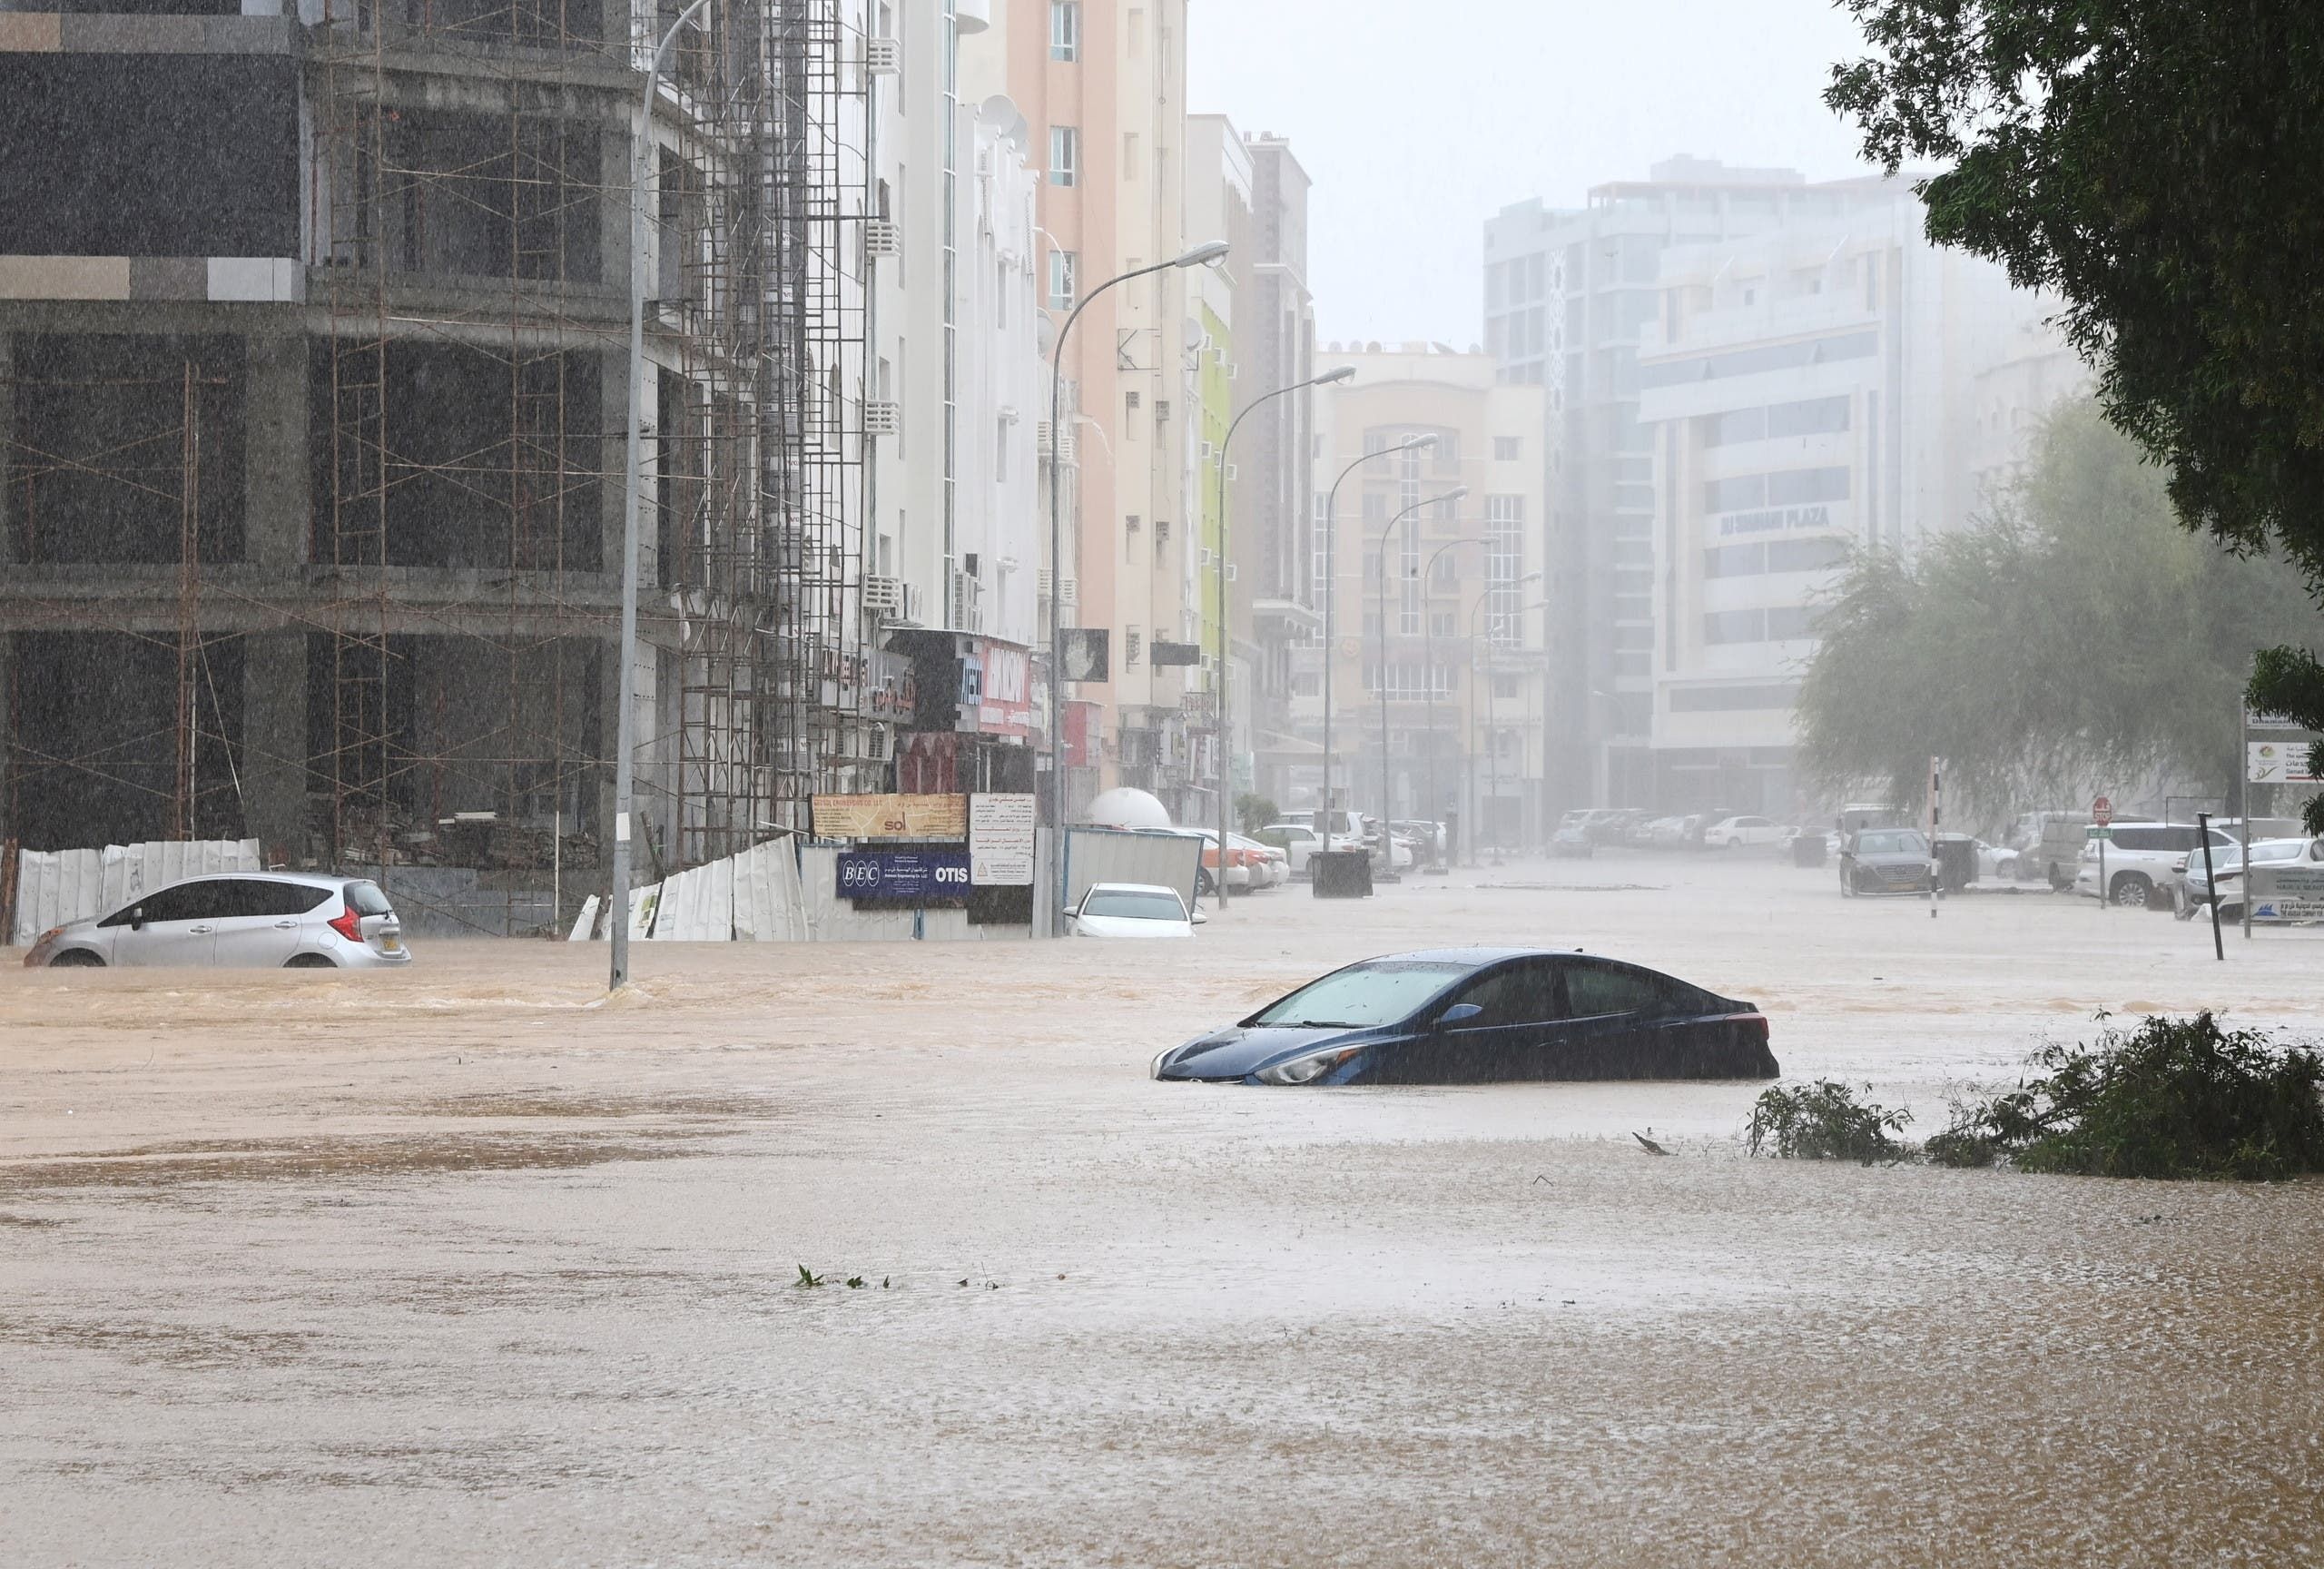 Cars are seen abandoned on a flooded street as Cyclone Shaheen makes landfall in Muscat Oman, October 3, 2021. (AFP)